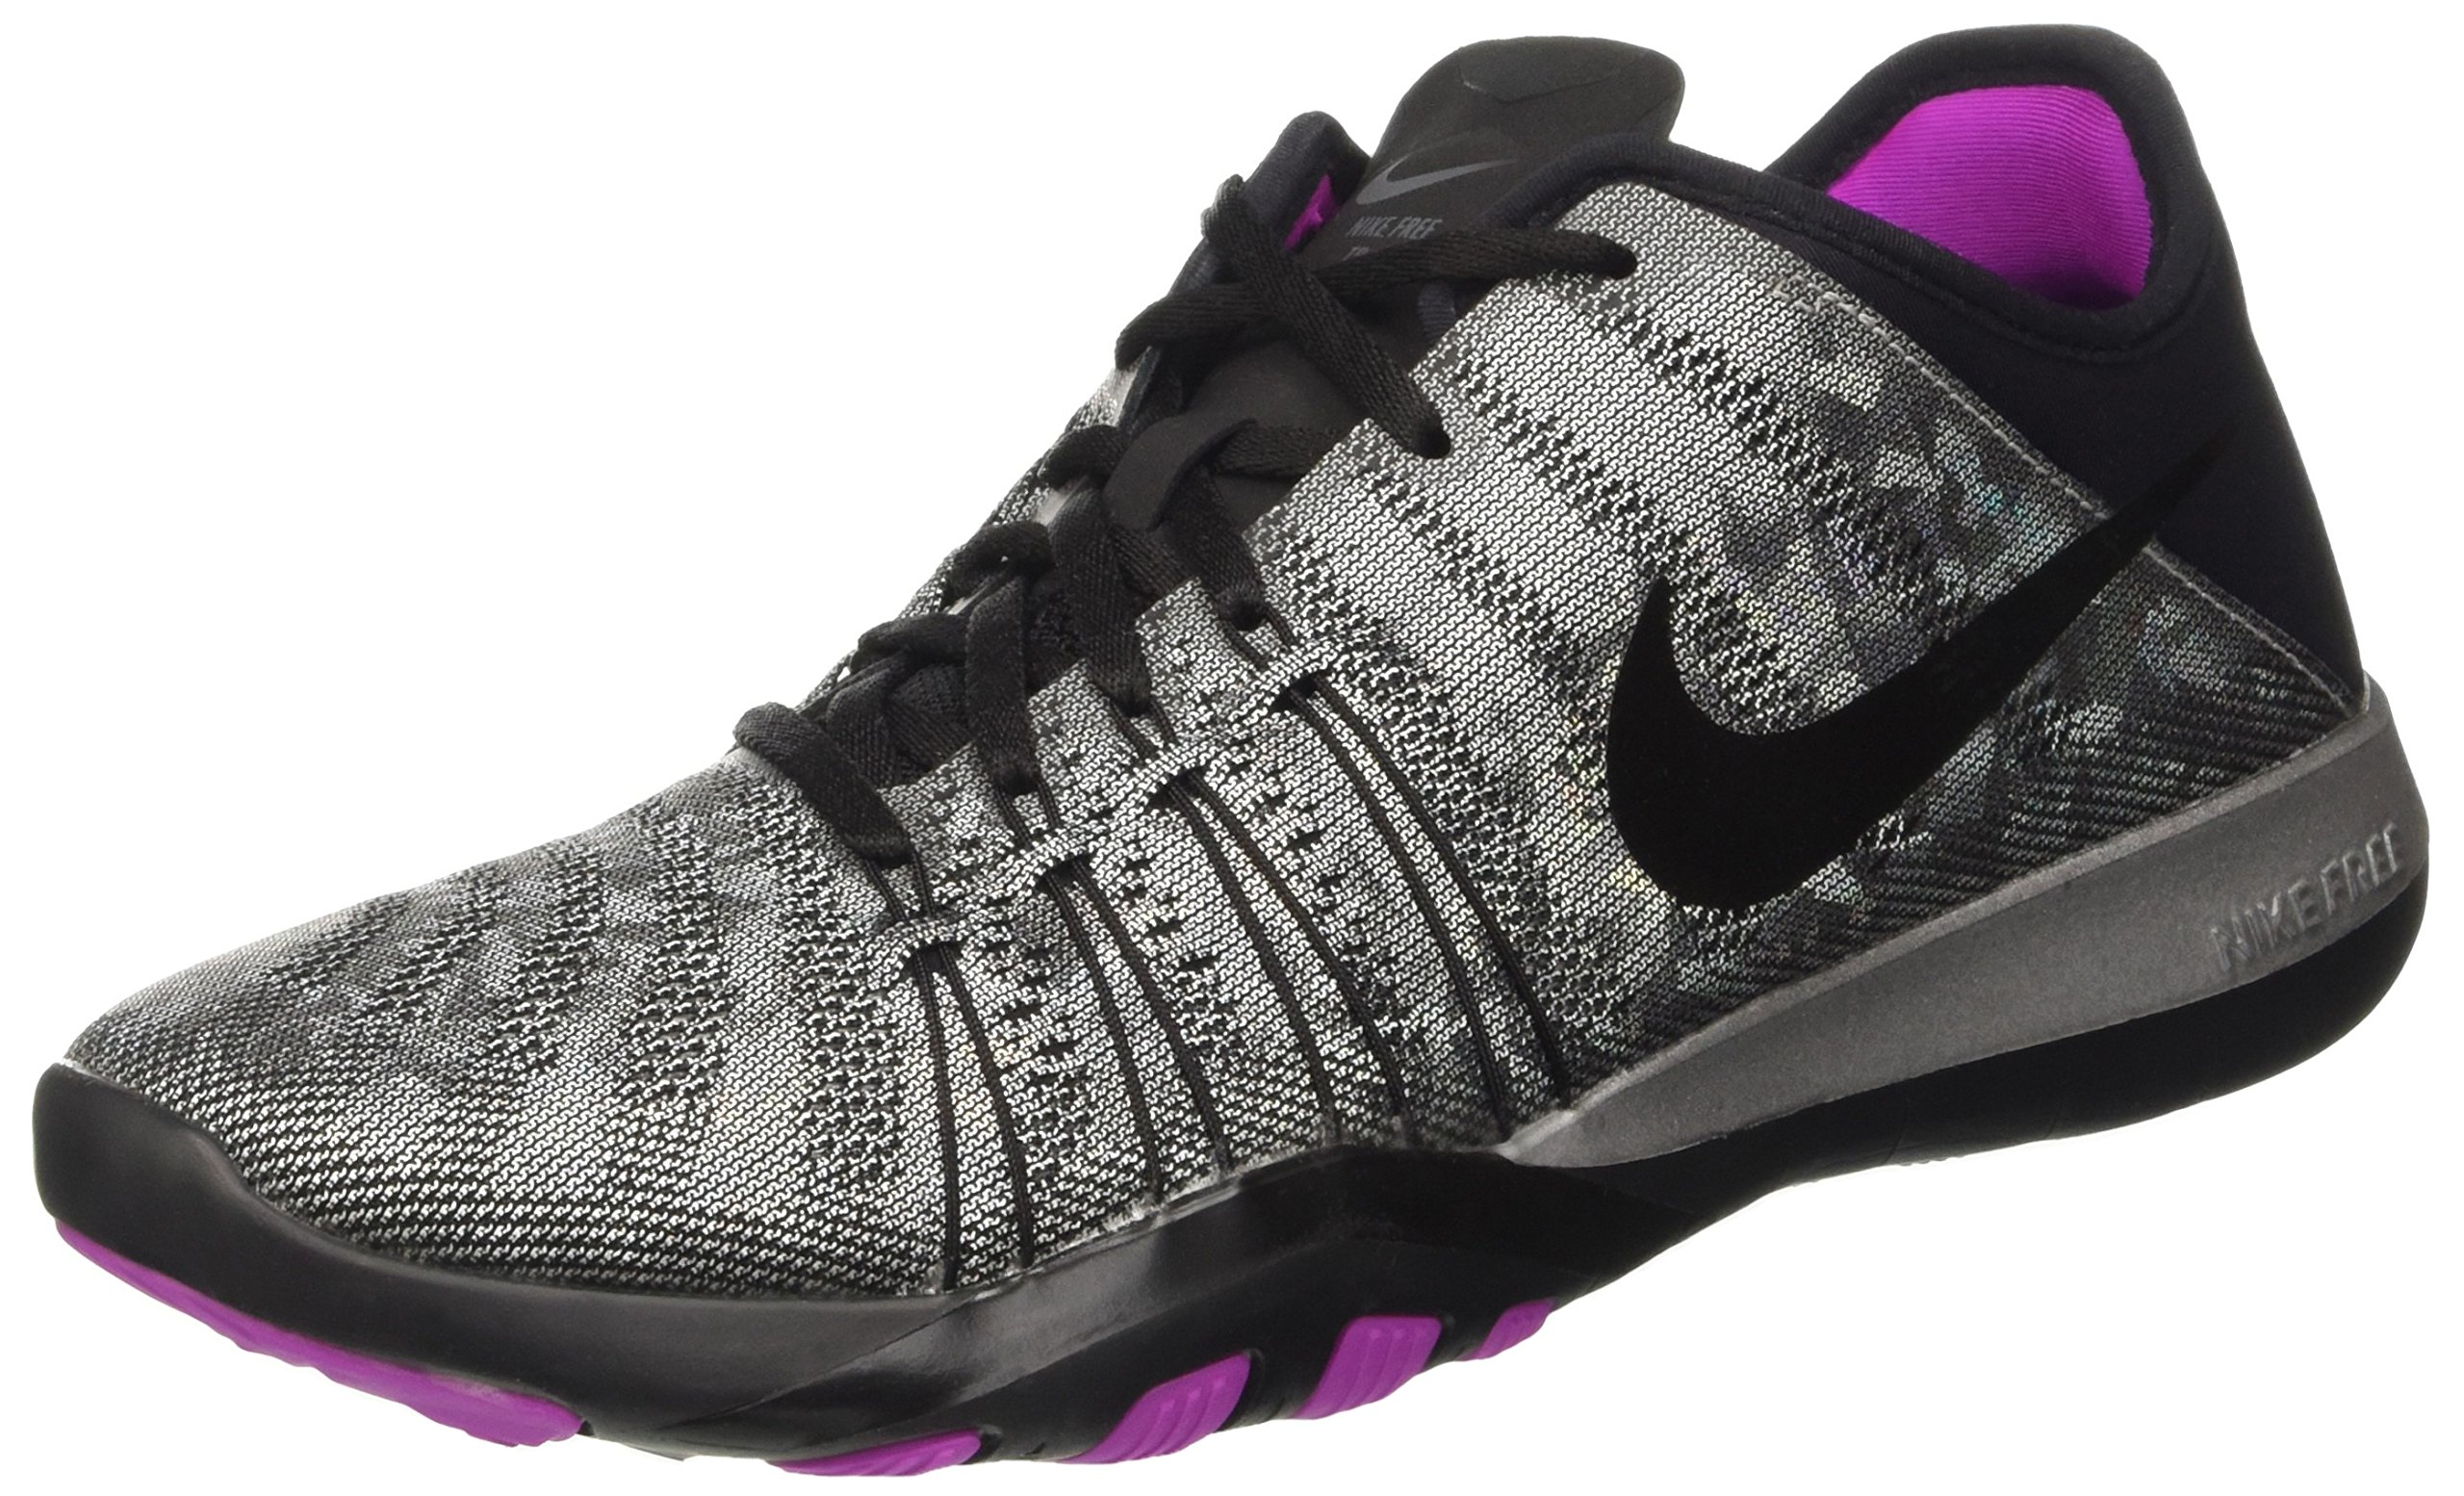 Galleon - Nike Women s Free TR 6 Metallic Training Shoe Metallic  Silver Black Hyper Violet Size 7 M US 9132b689a